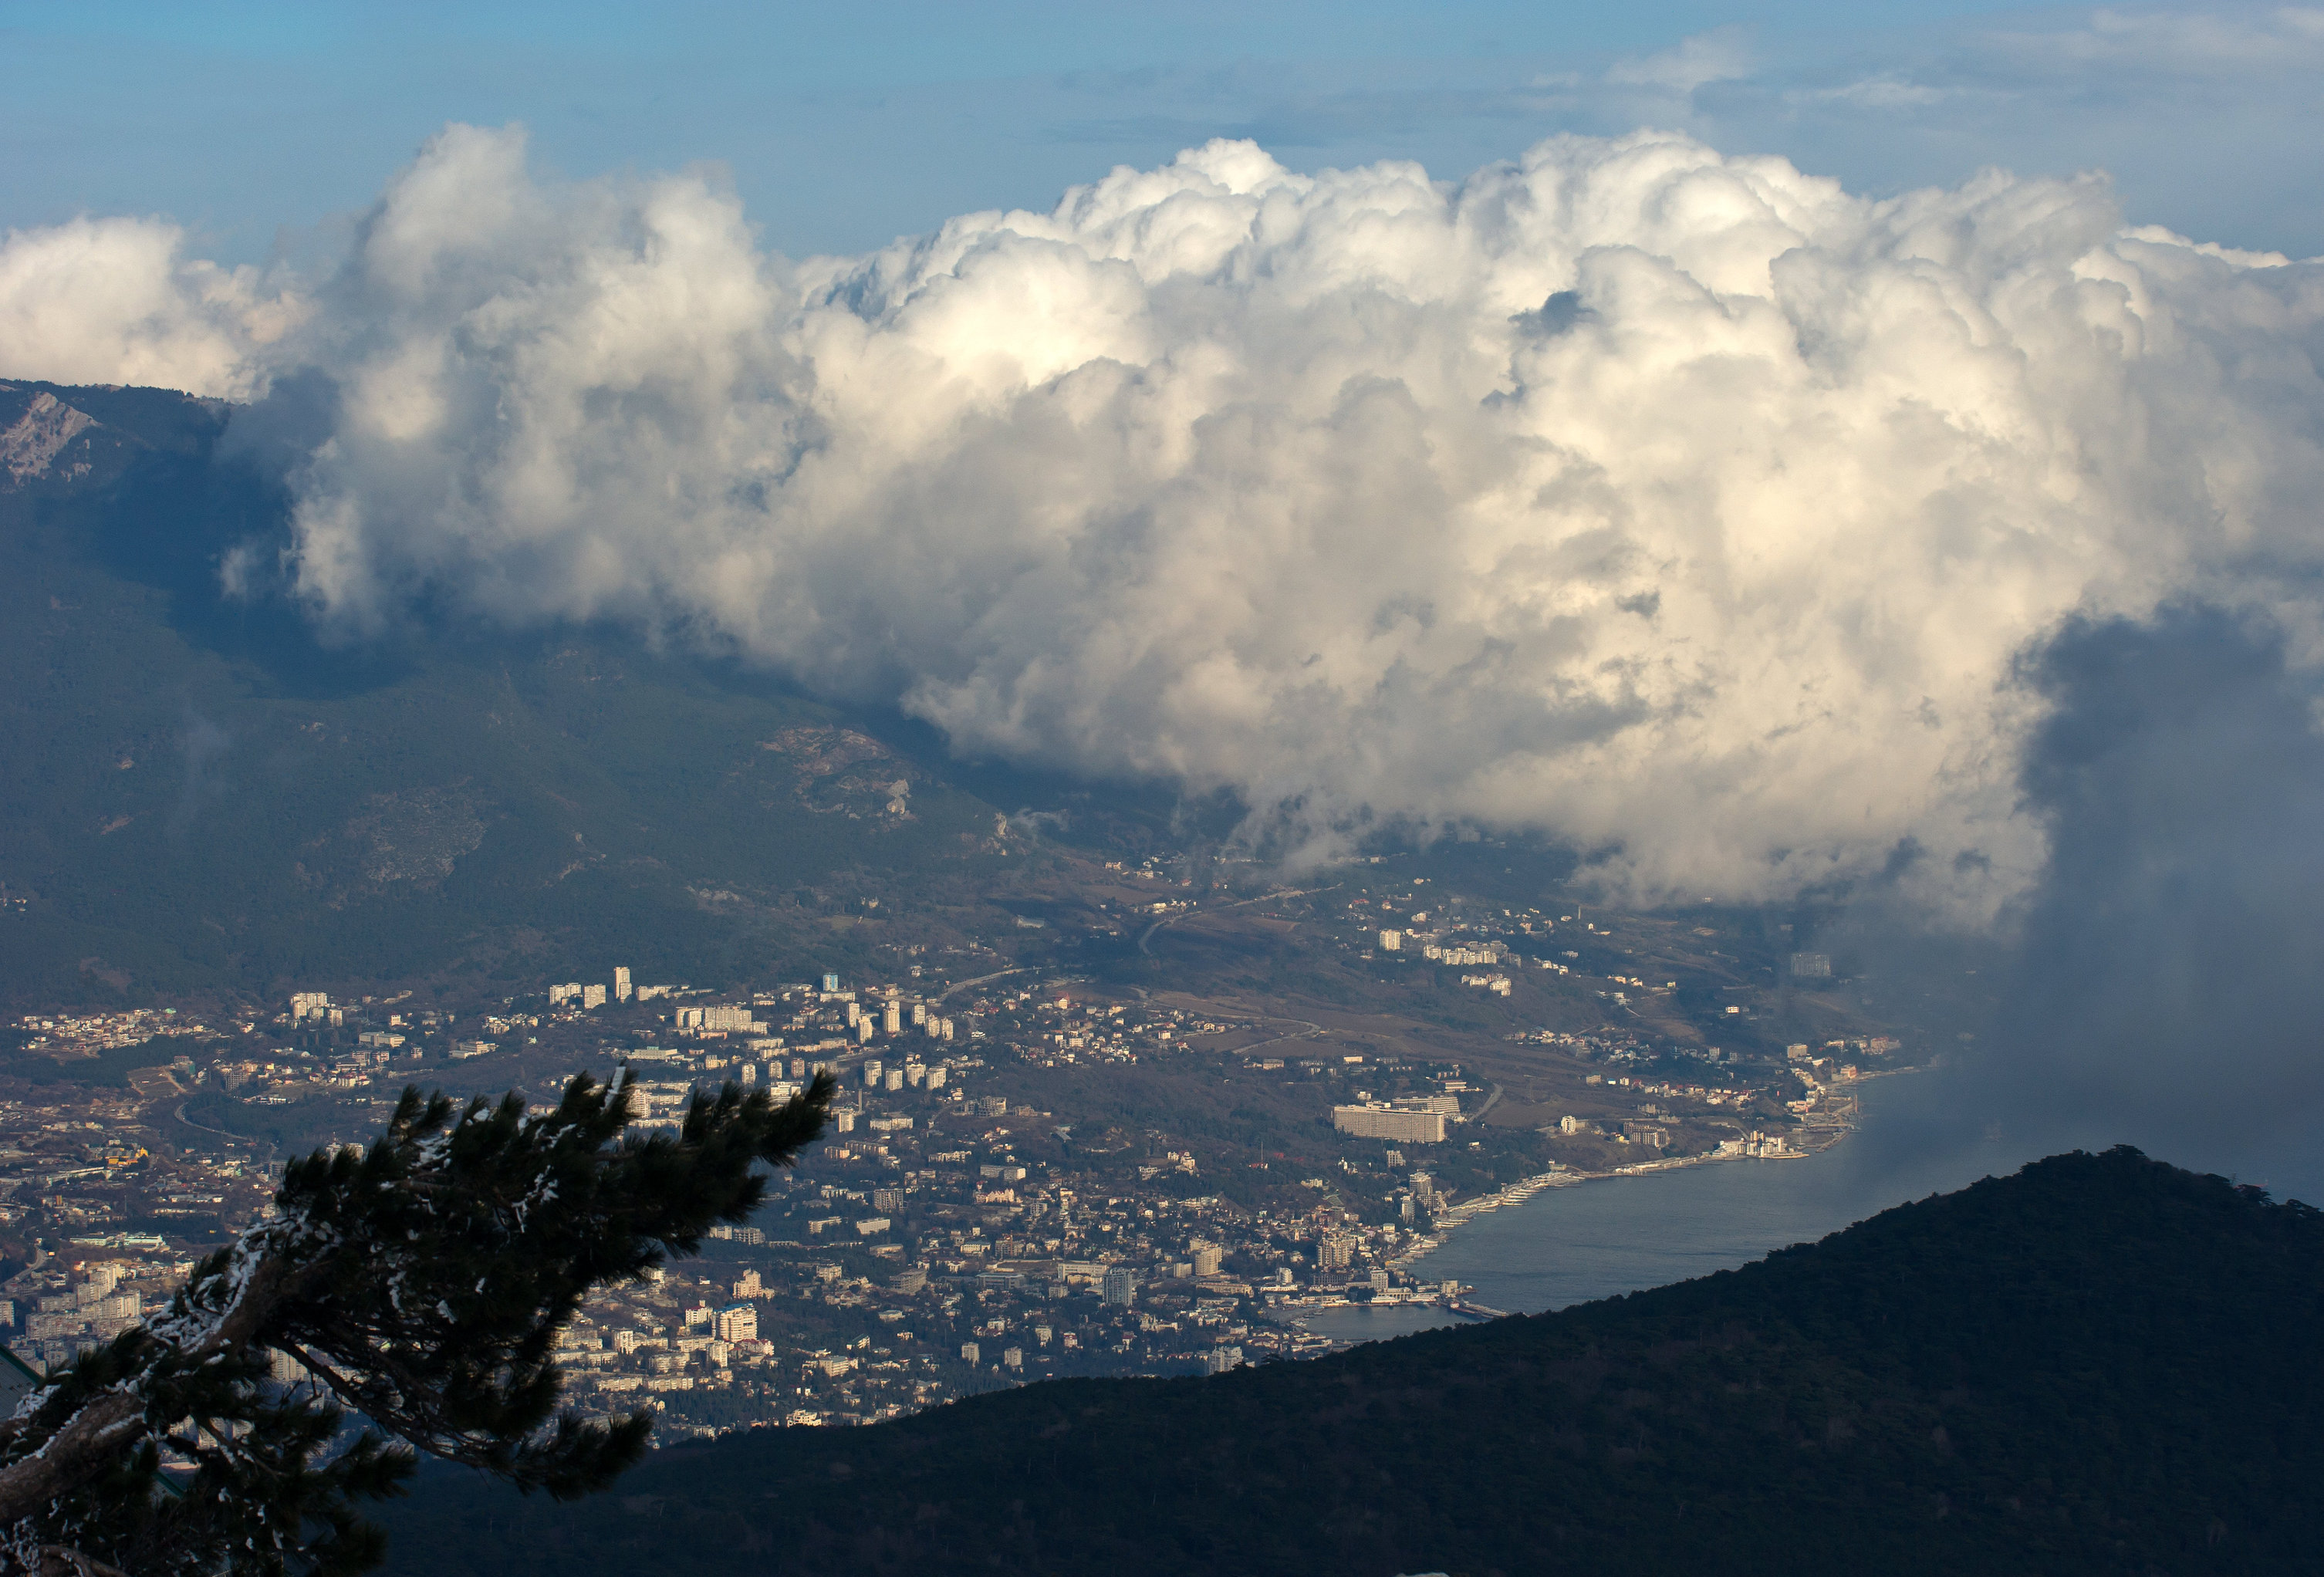 A view on Yalta from Mount Ai-Petri in Crimea.